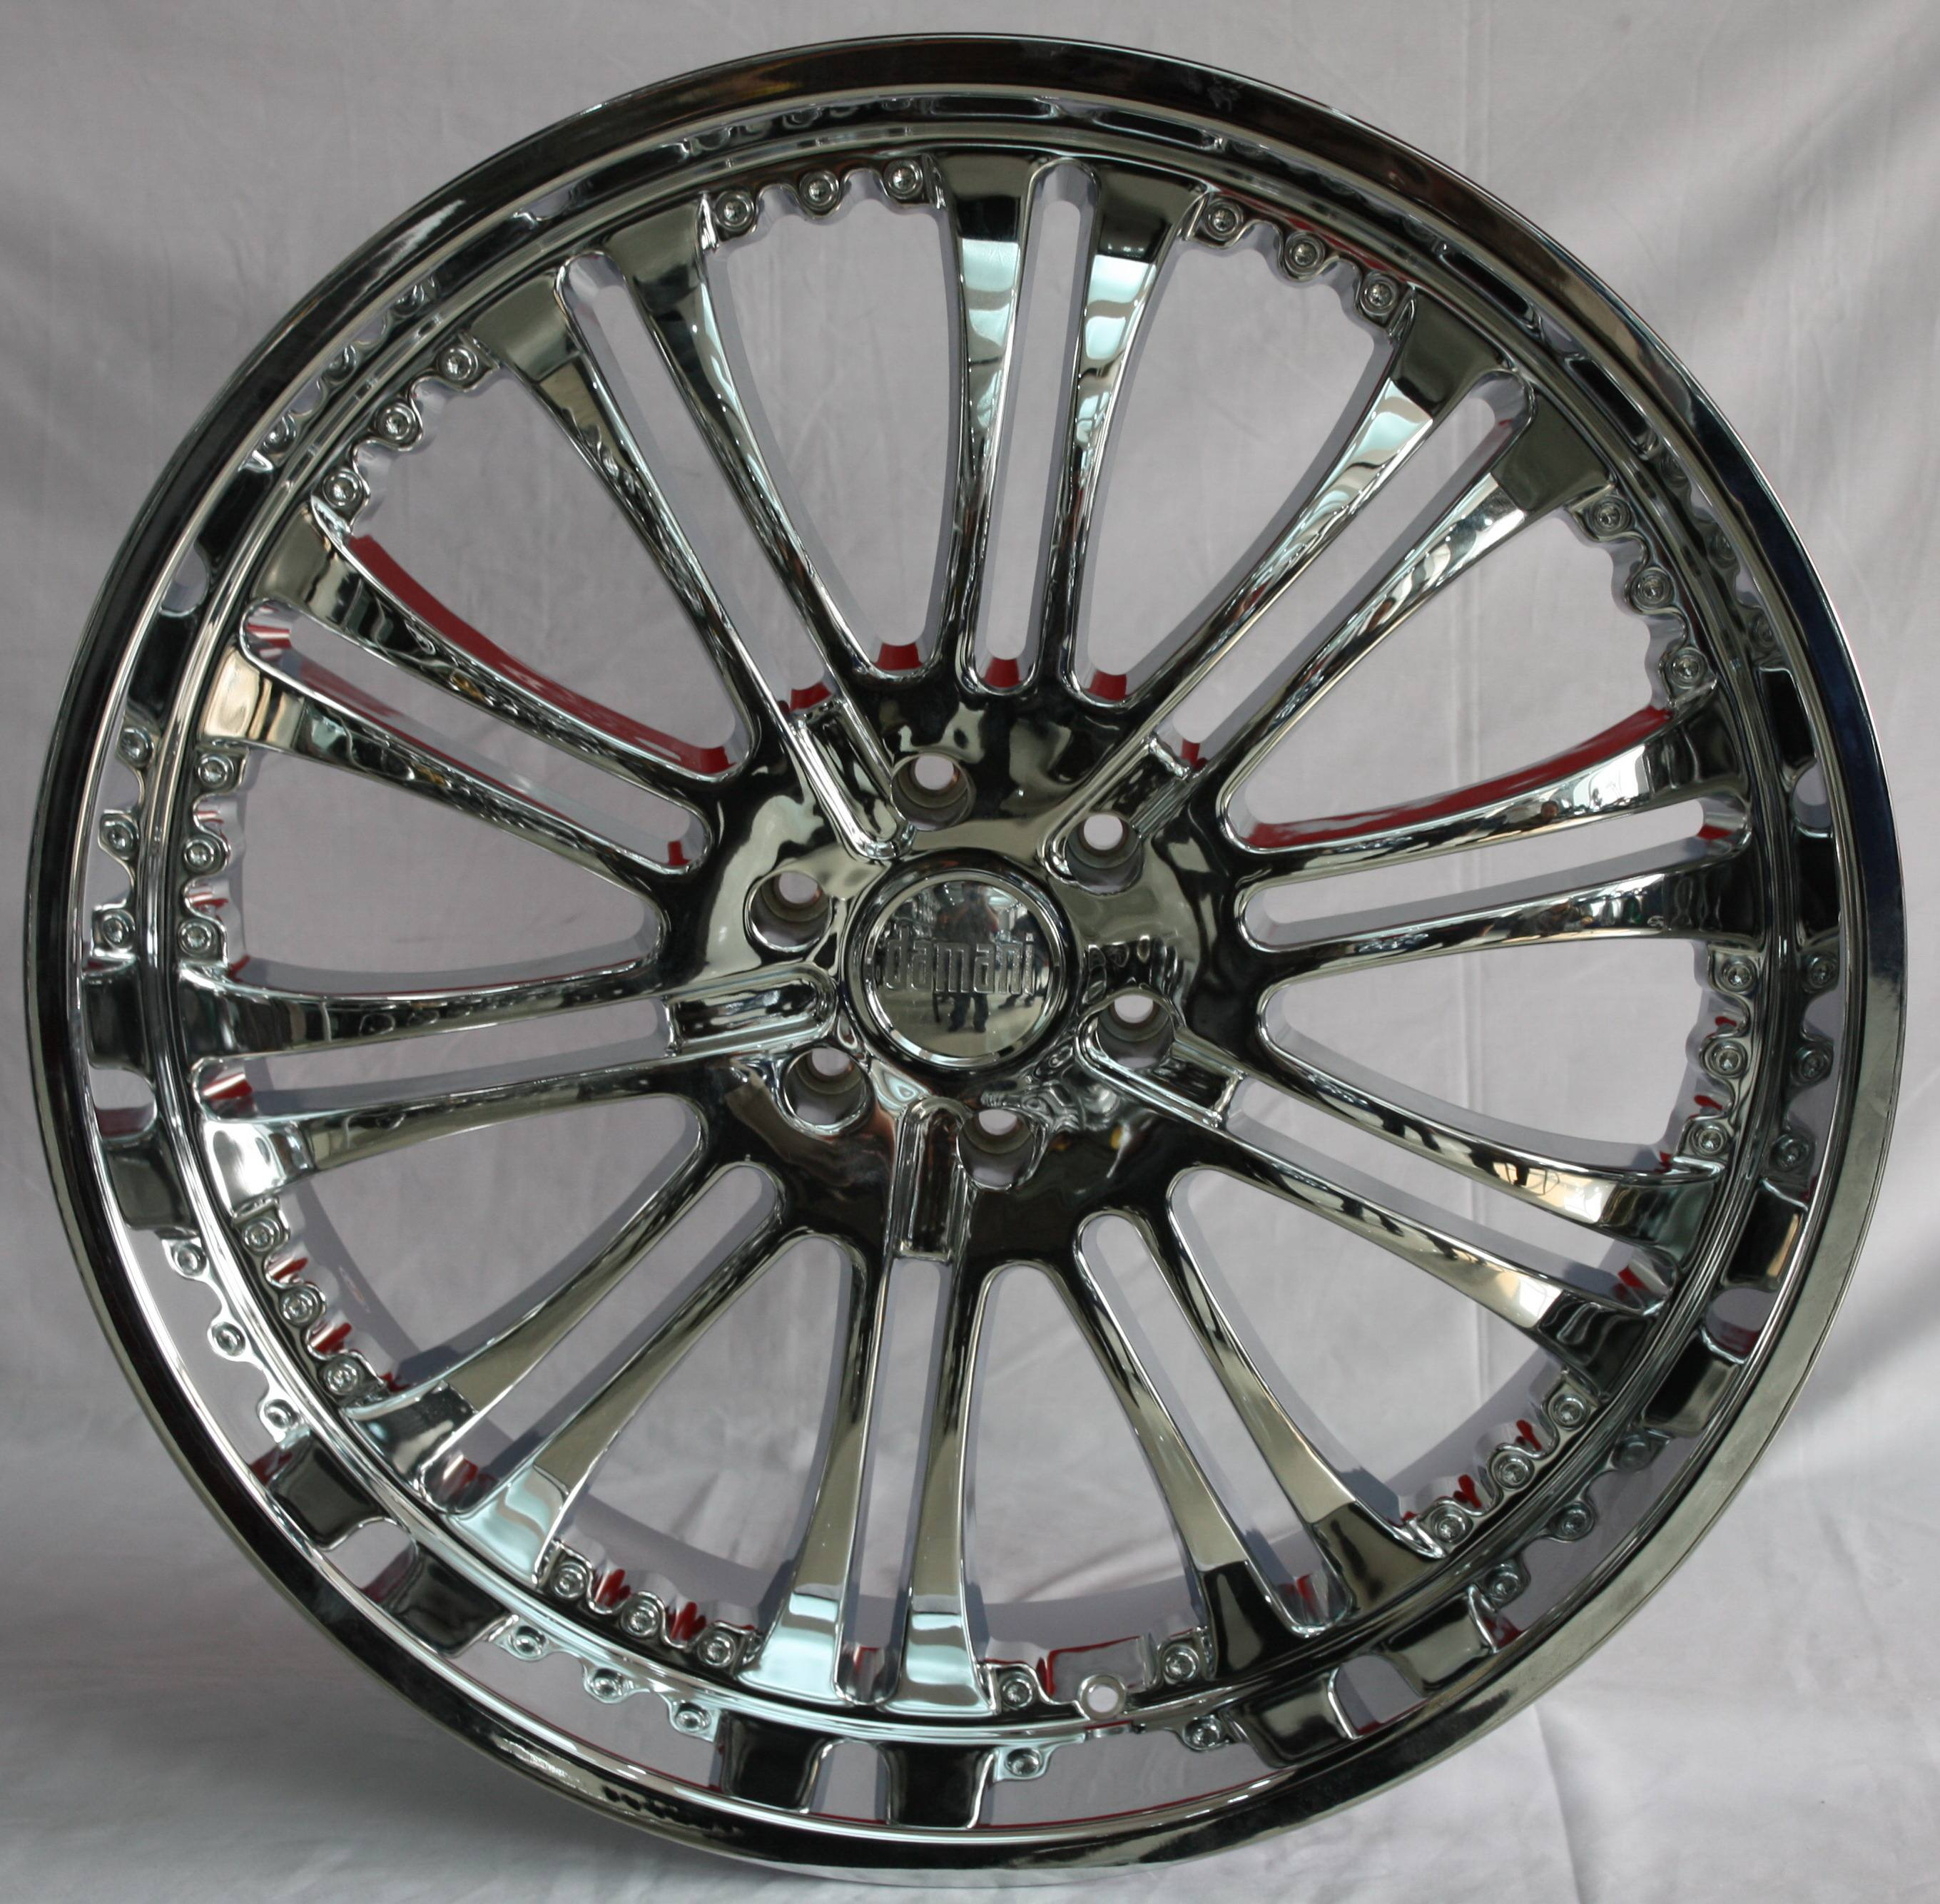 16'' 17'' 18'' 20'' 22'' 24'' 26'' inch chrome car alloy wheels